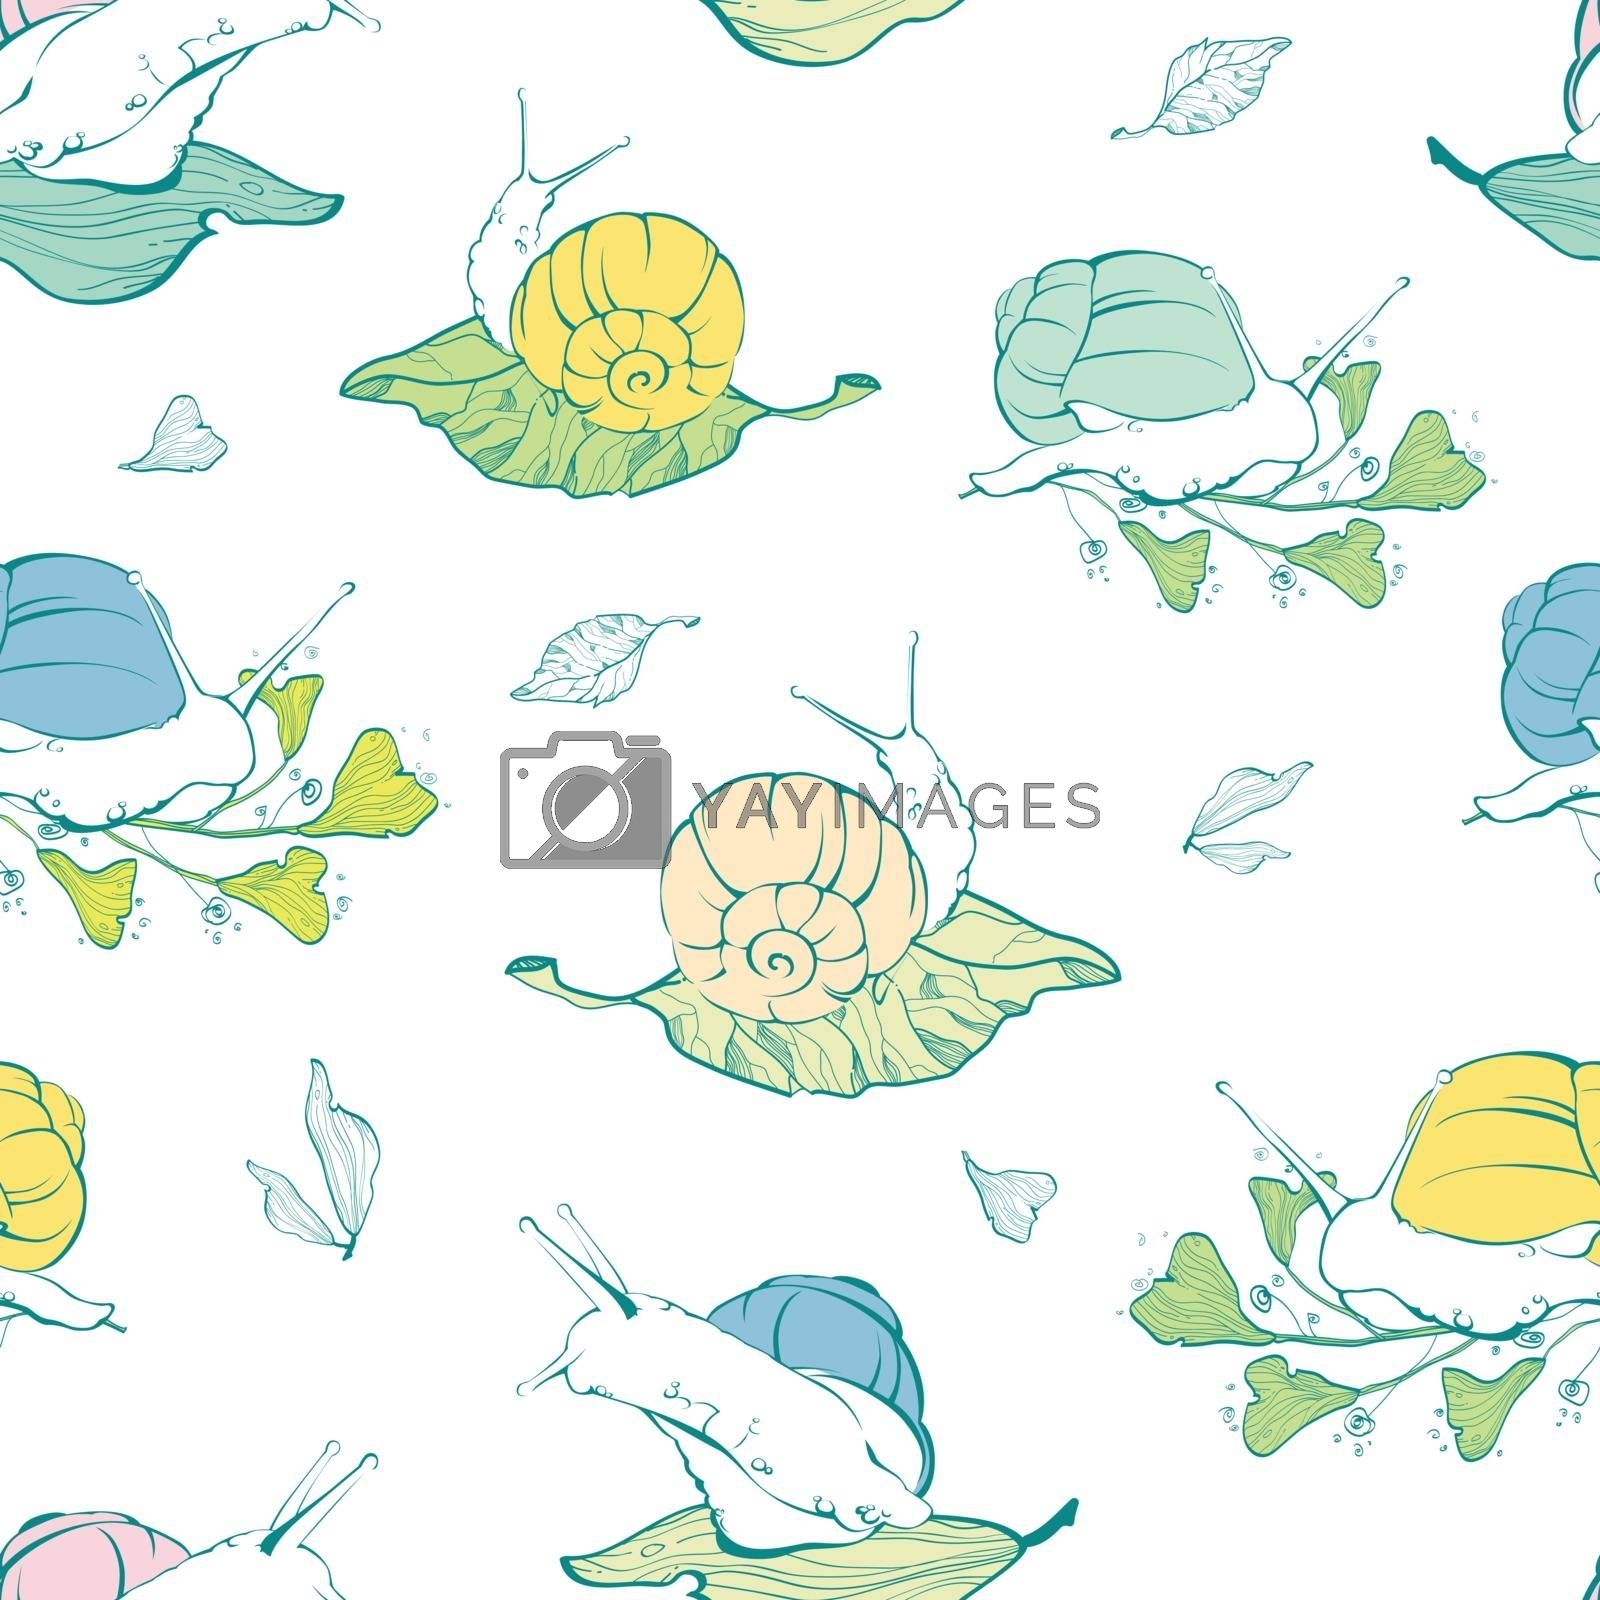 Vector lineart snails on leaves seamless pattern background graphic design